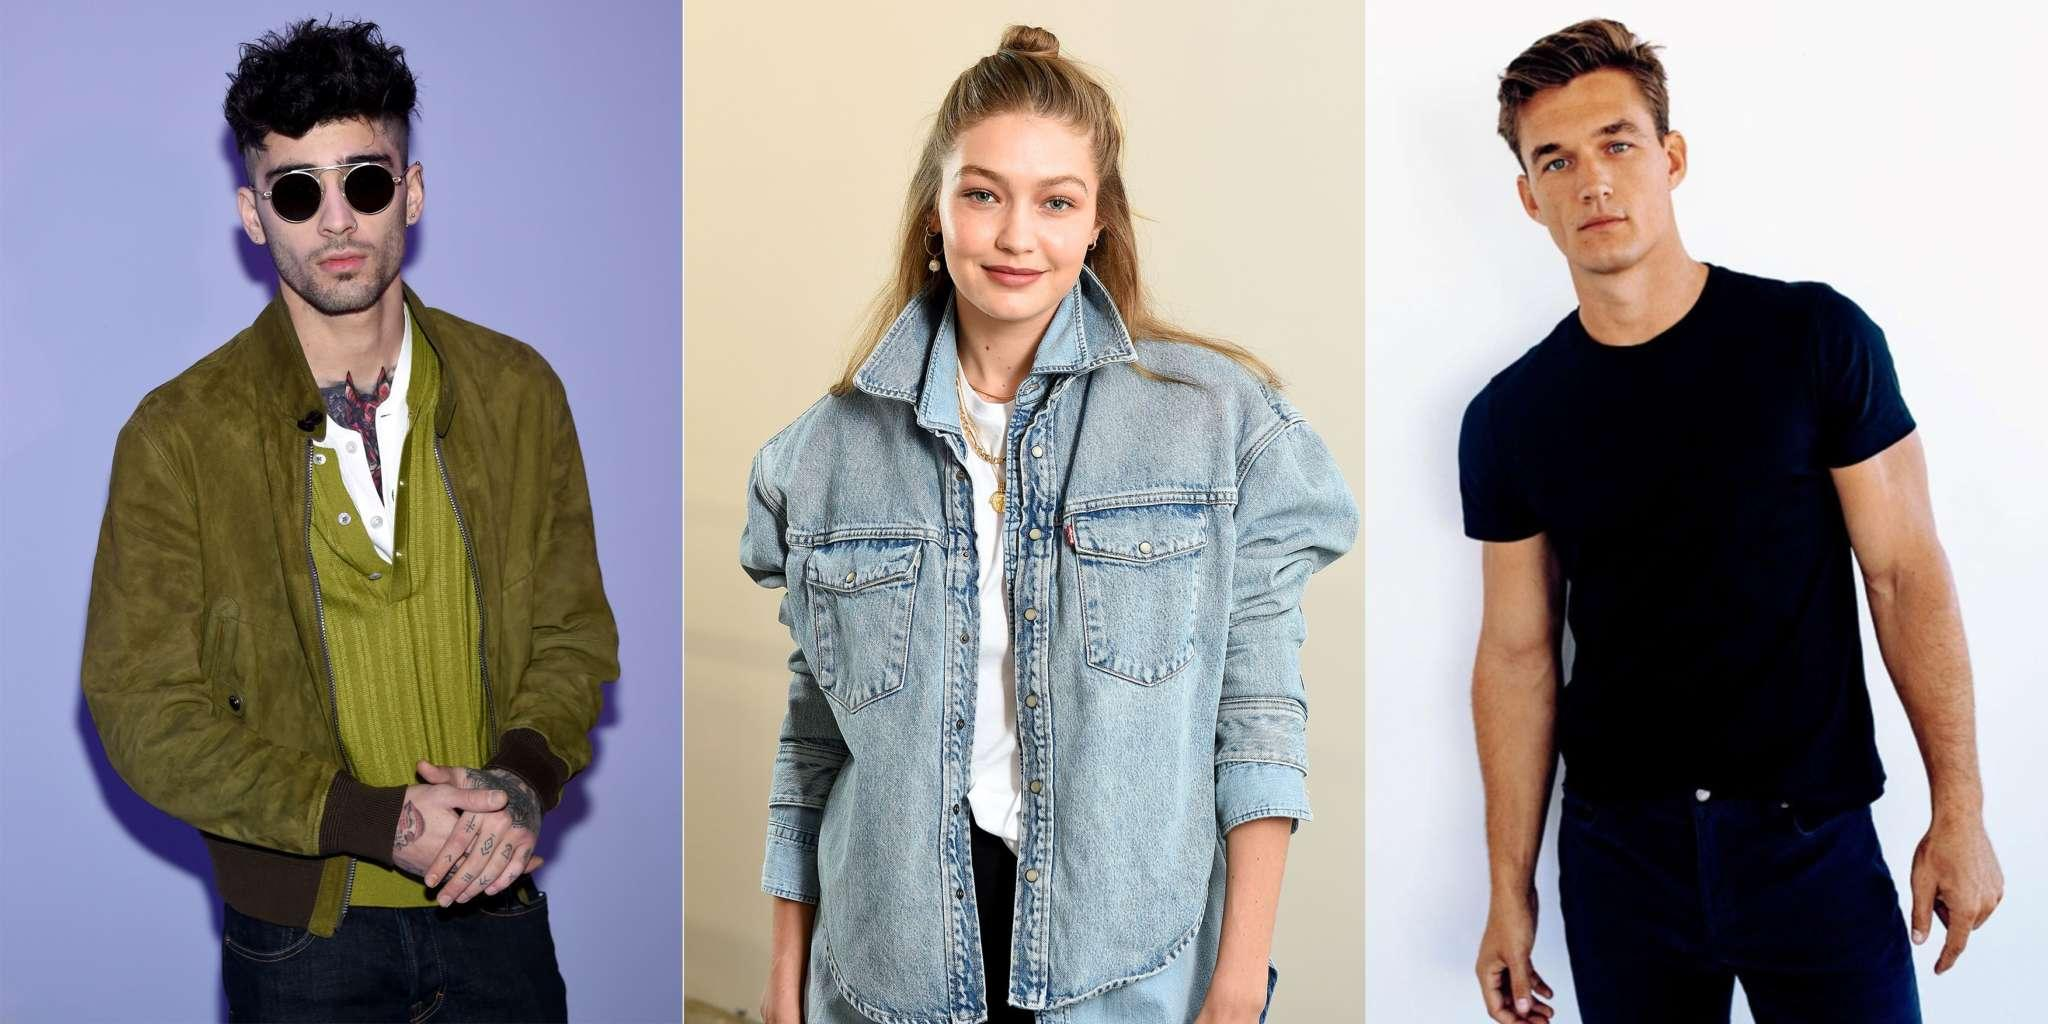 Gigi Hadid And Zayn Malik Reportedly 'Reconnecting' In The Aftermath Of Her Whirlwind Tyler Cameron Romance